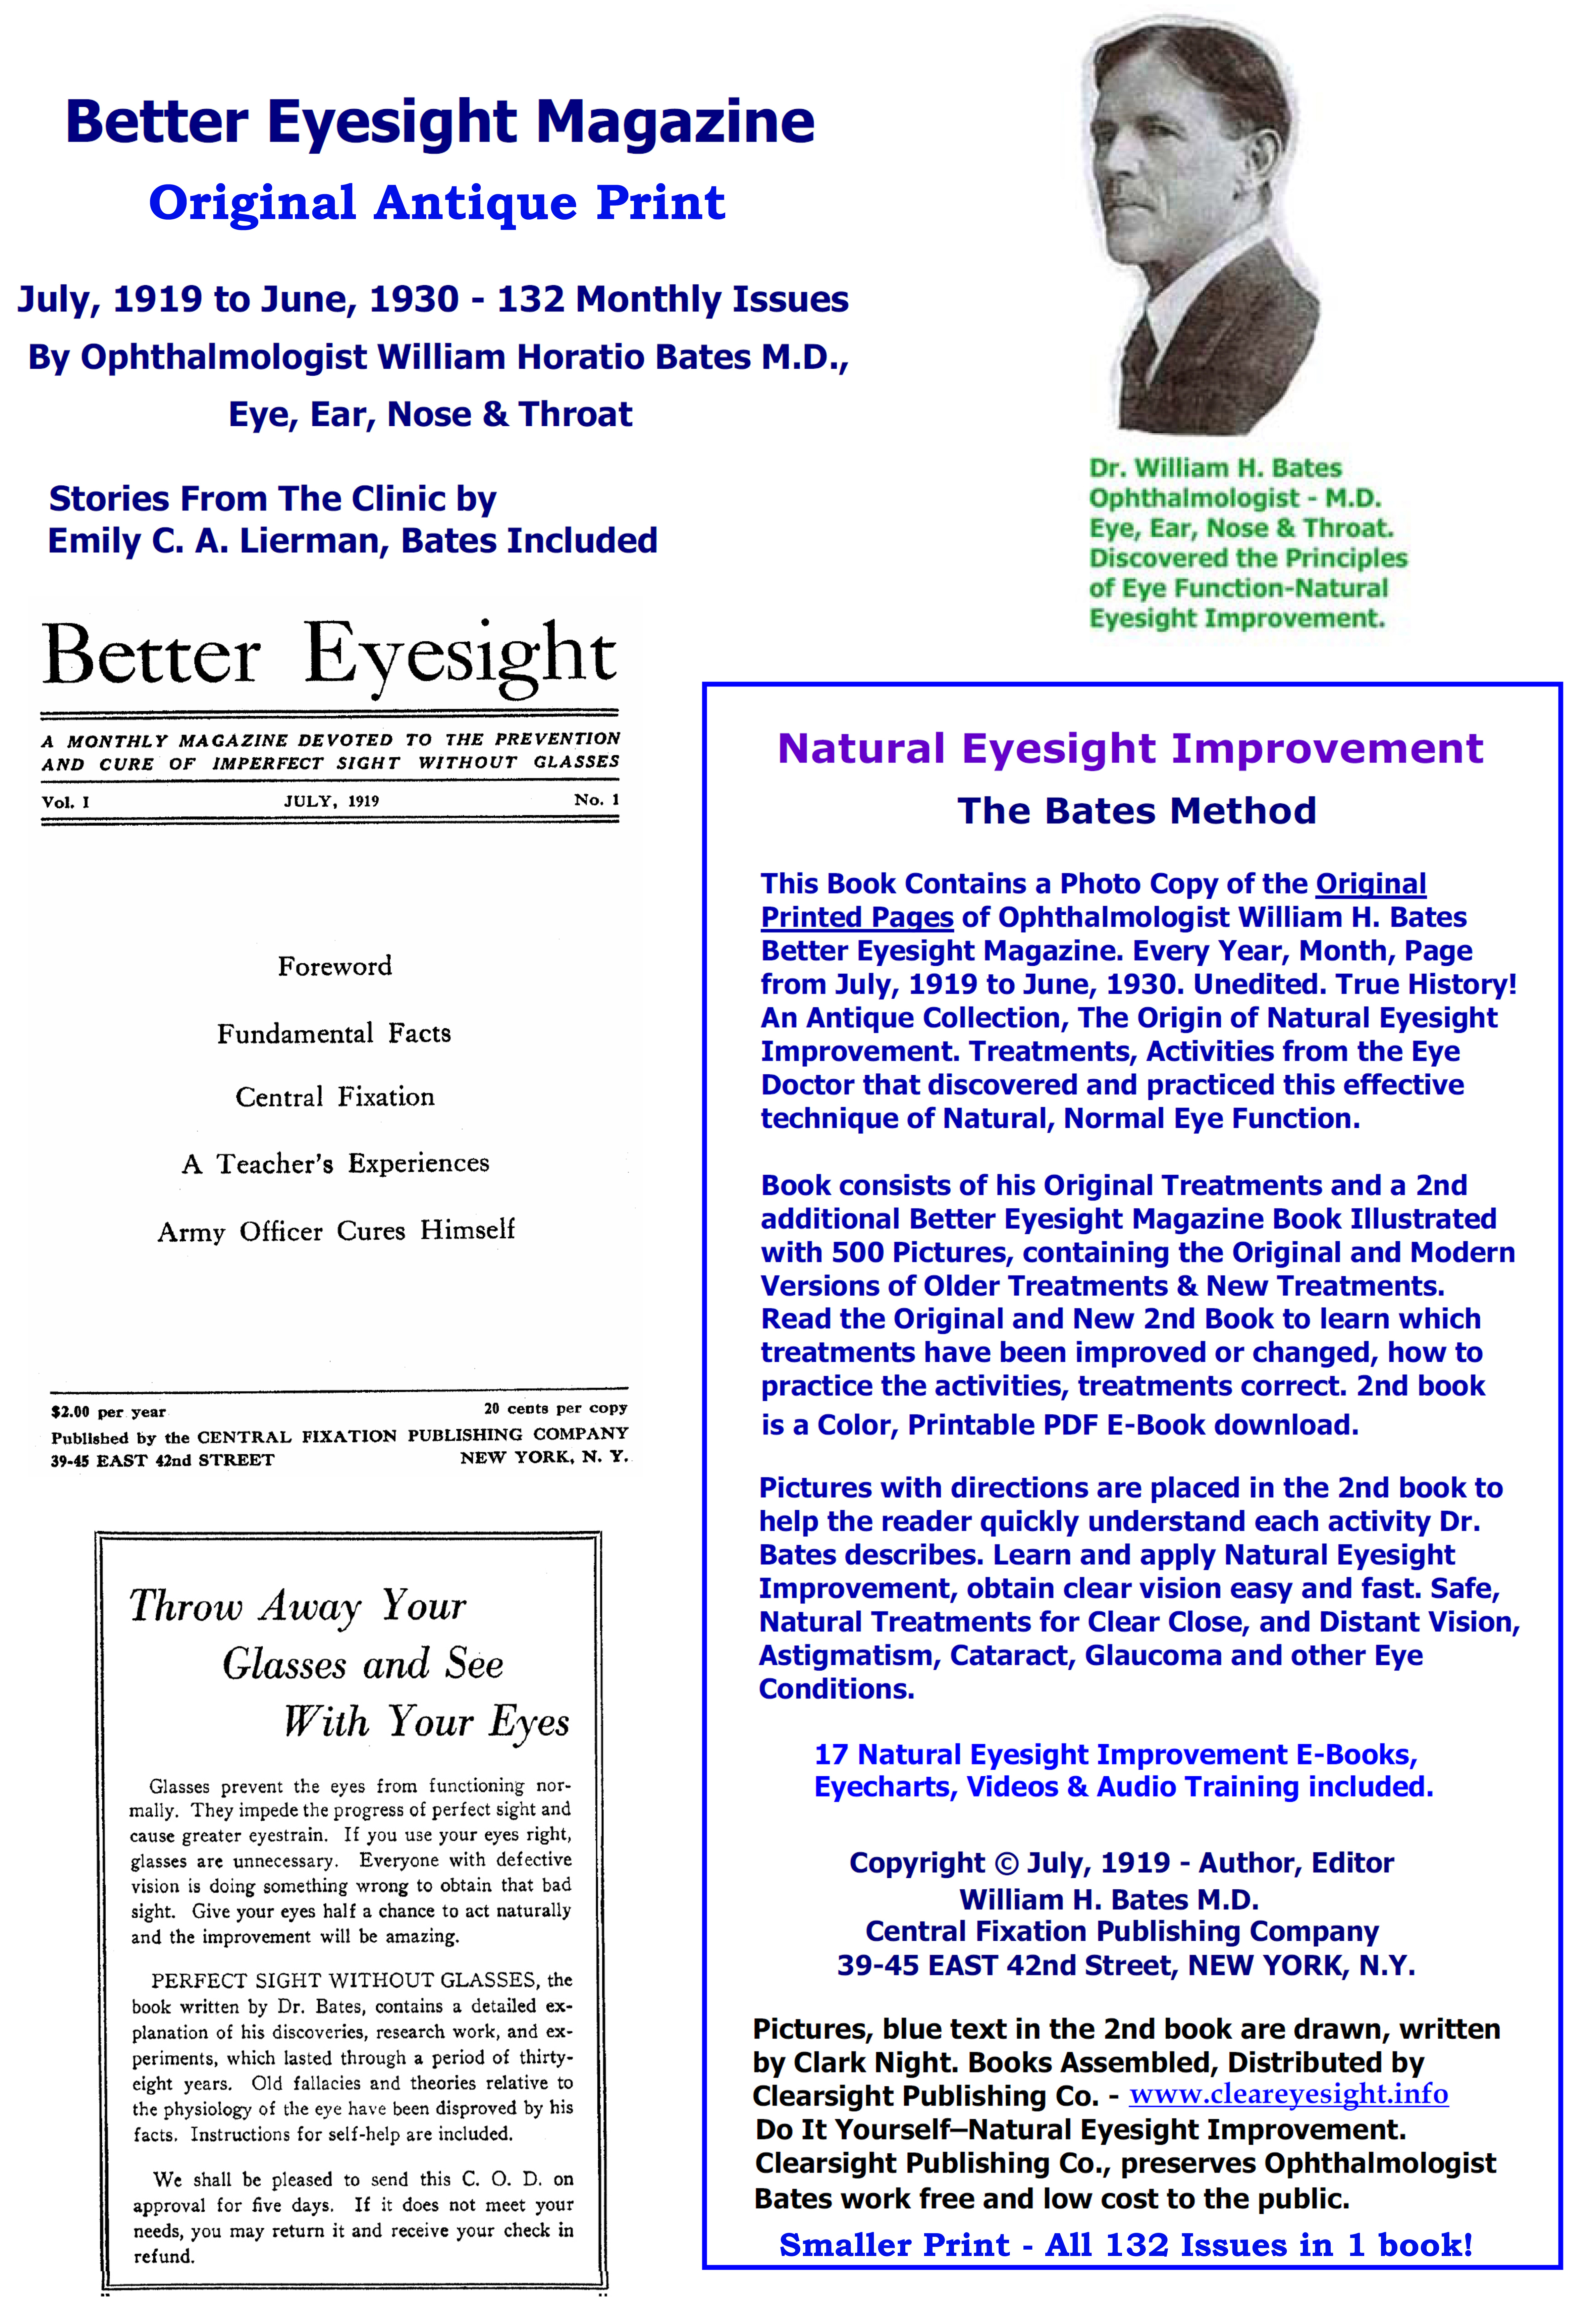 Better Eyesight Magazine - 132 Issues, 2400+ Pages  in Small Print. Original, Antique